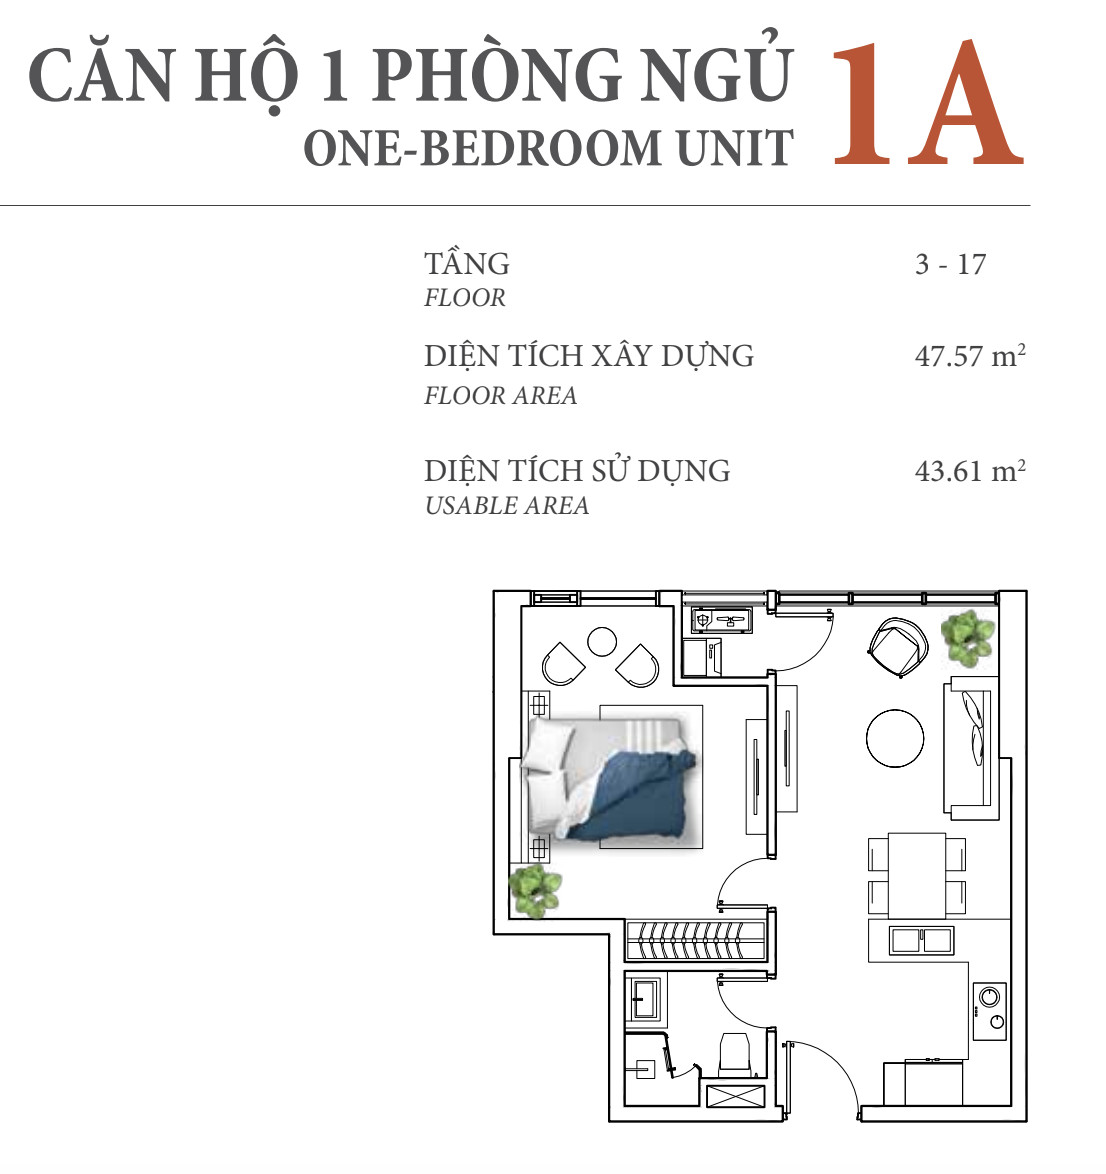 DI1403 - Diamond Island Apartment For Sale & Sale in Ho Chi Minh City - 1 bed